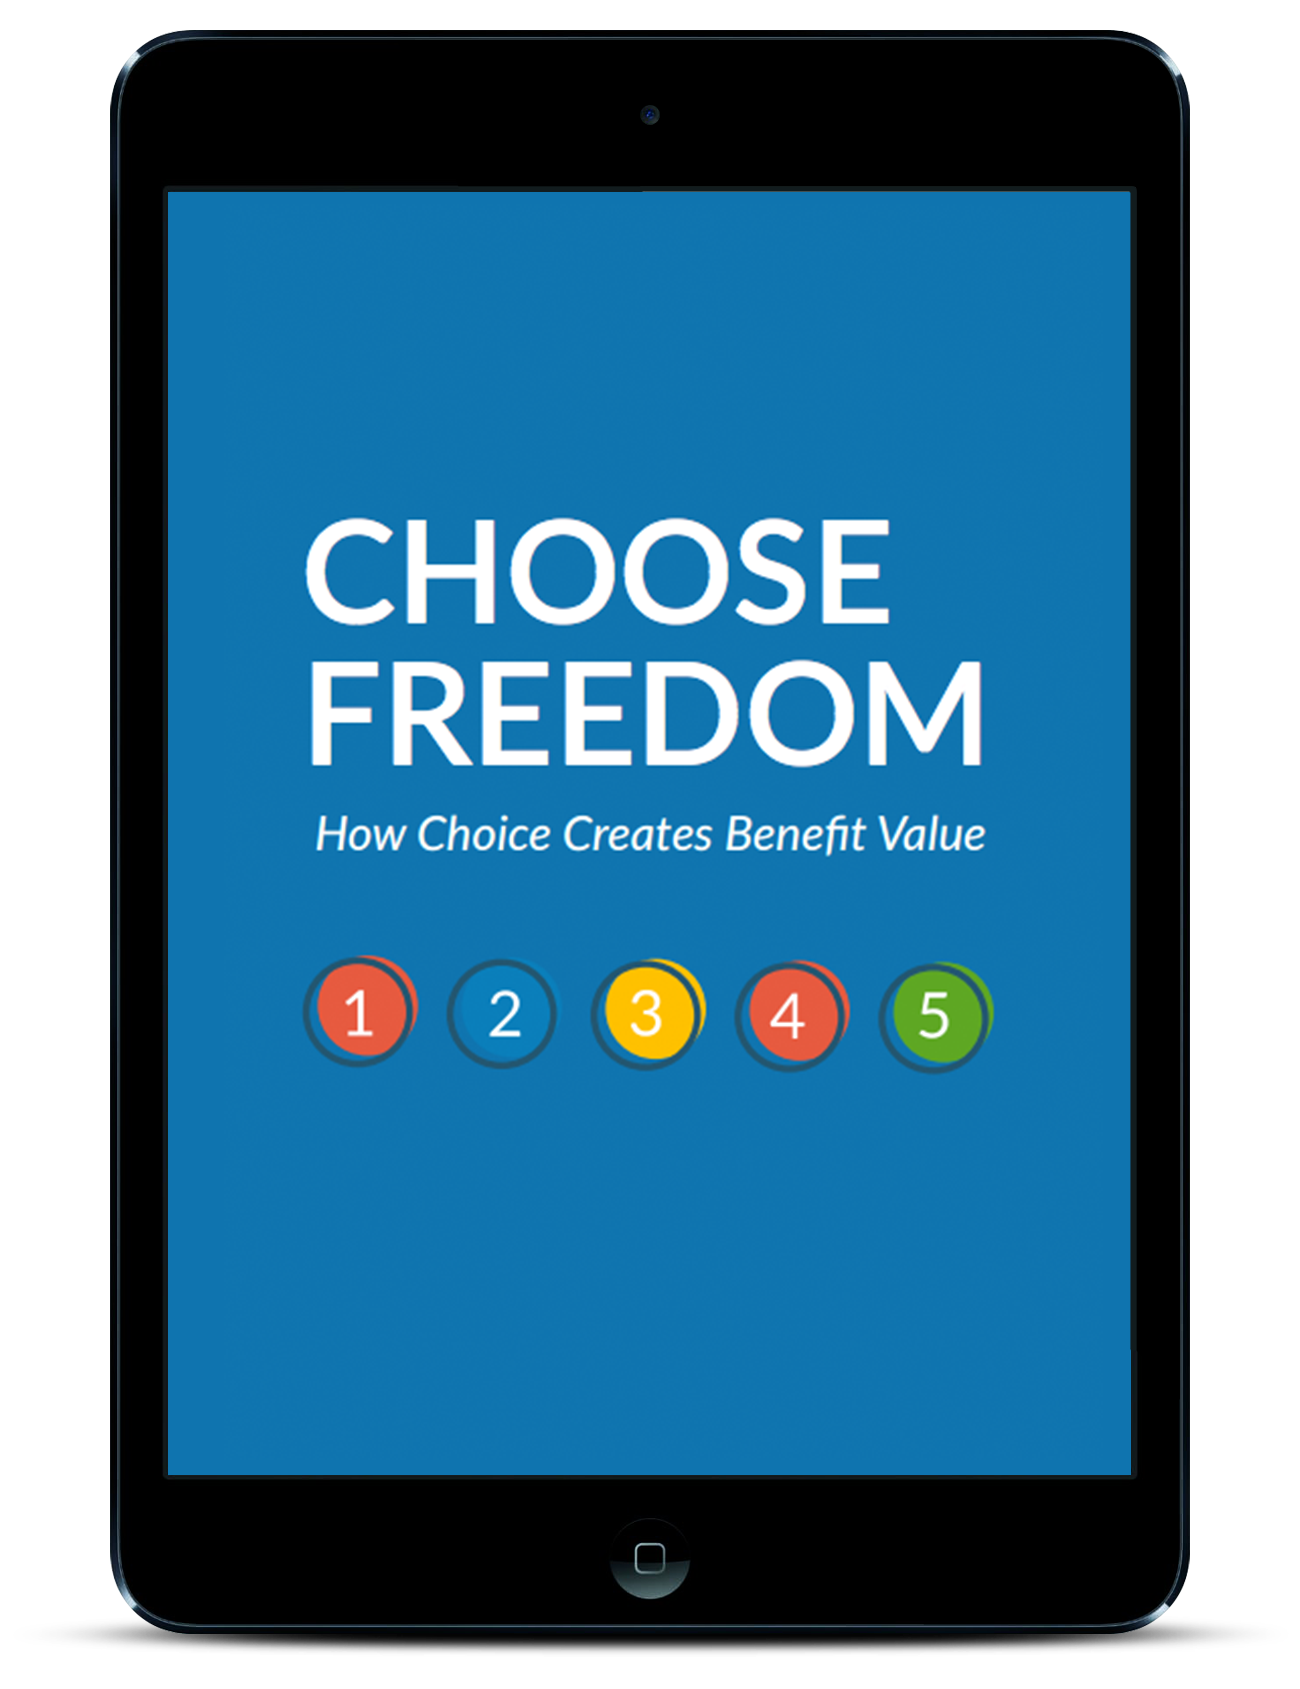 Choose Freedom: How Choice Creates Benefit Value